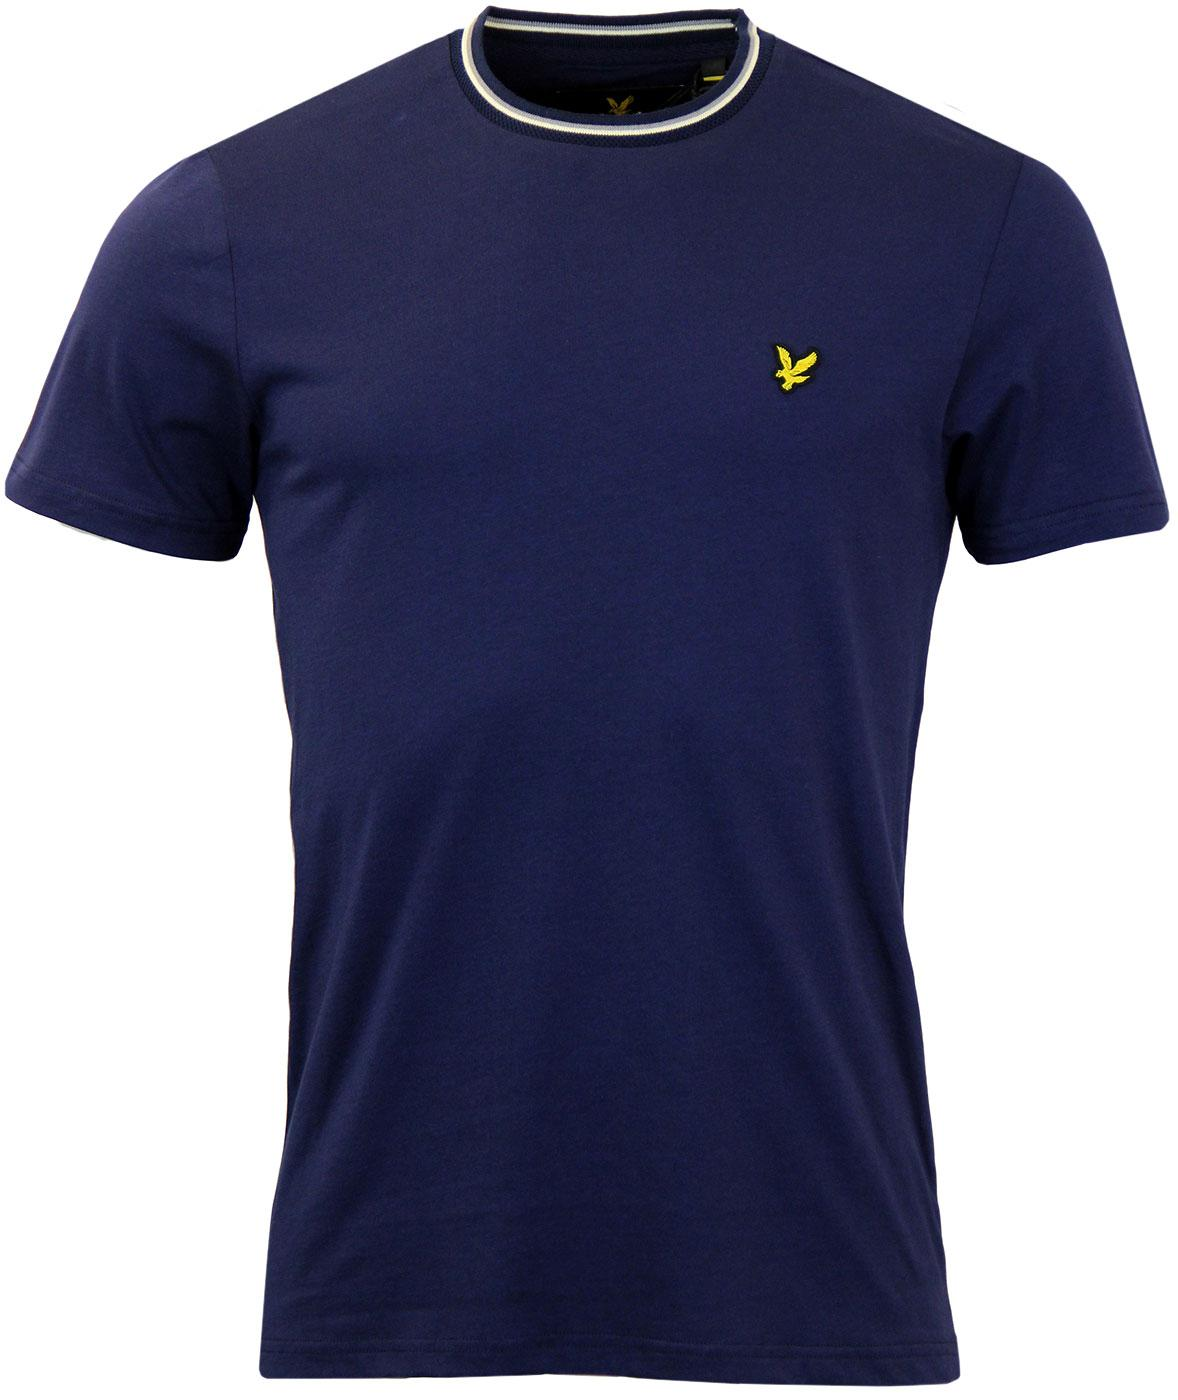 LYLE & SCOTT Retro Heritage Archive Trim T-Shirt